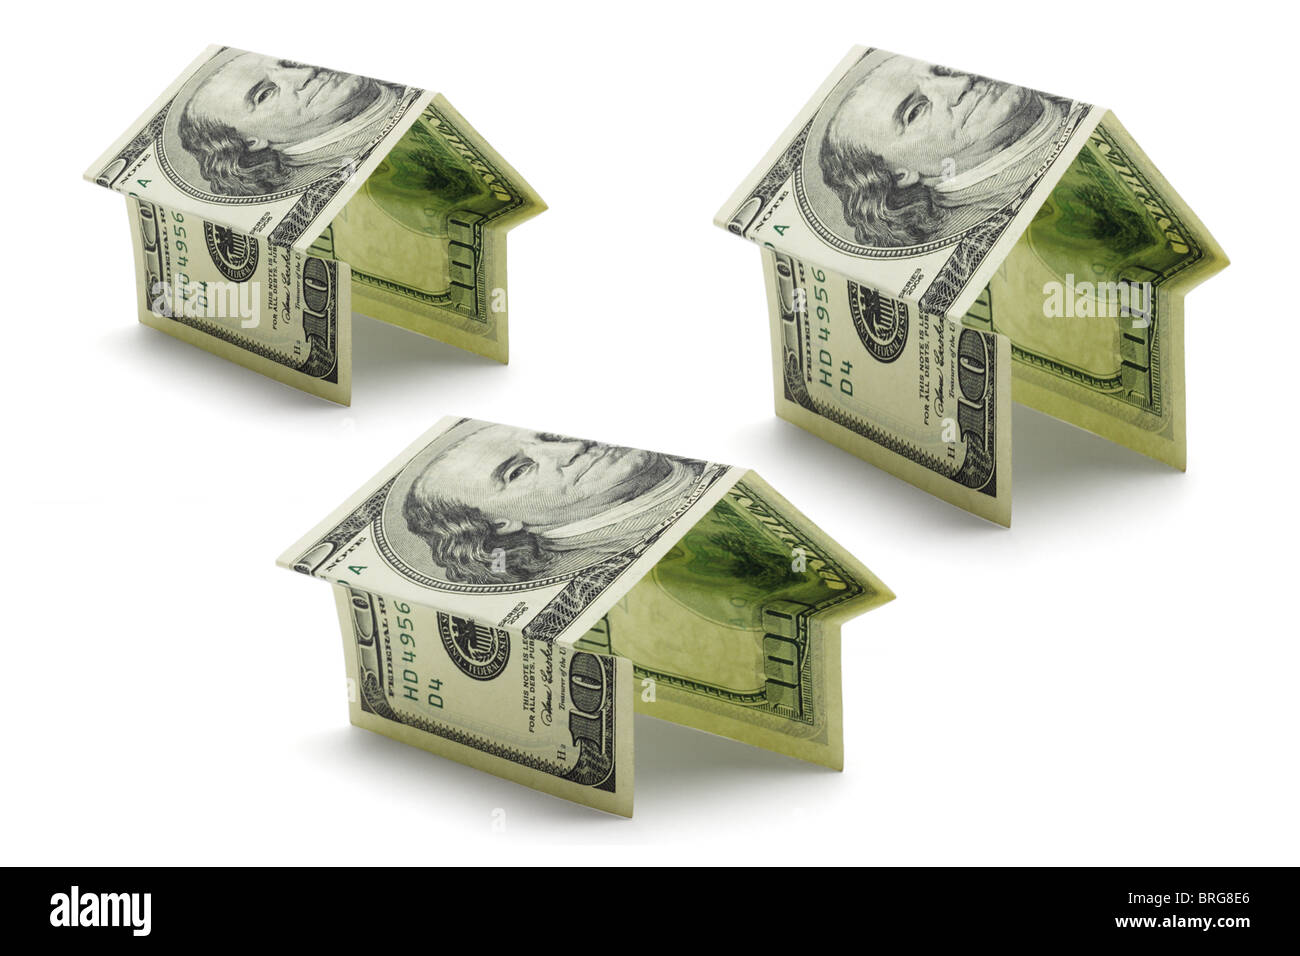 Hundred dollars US notes folded in various shapes and sizes of houses on white background - Stock Image